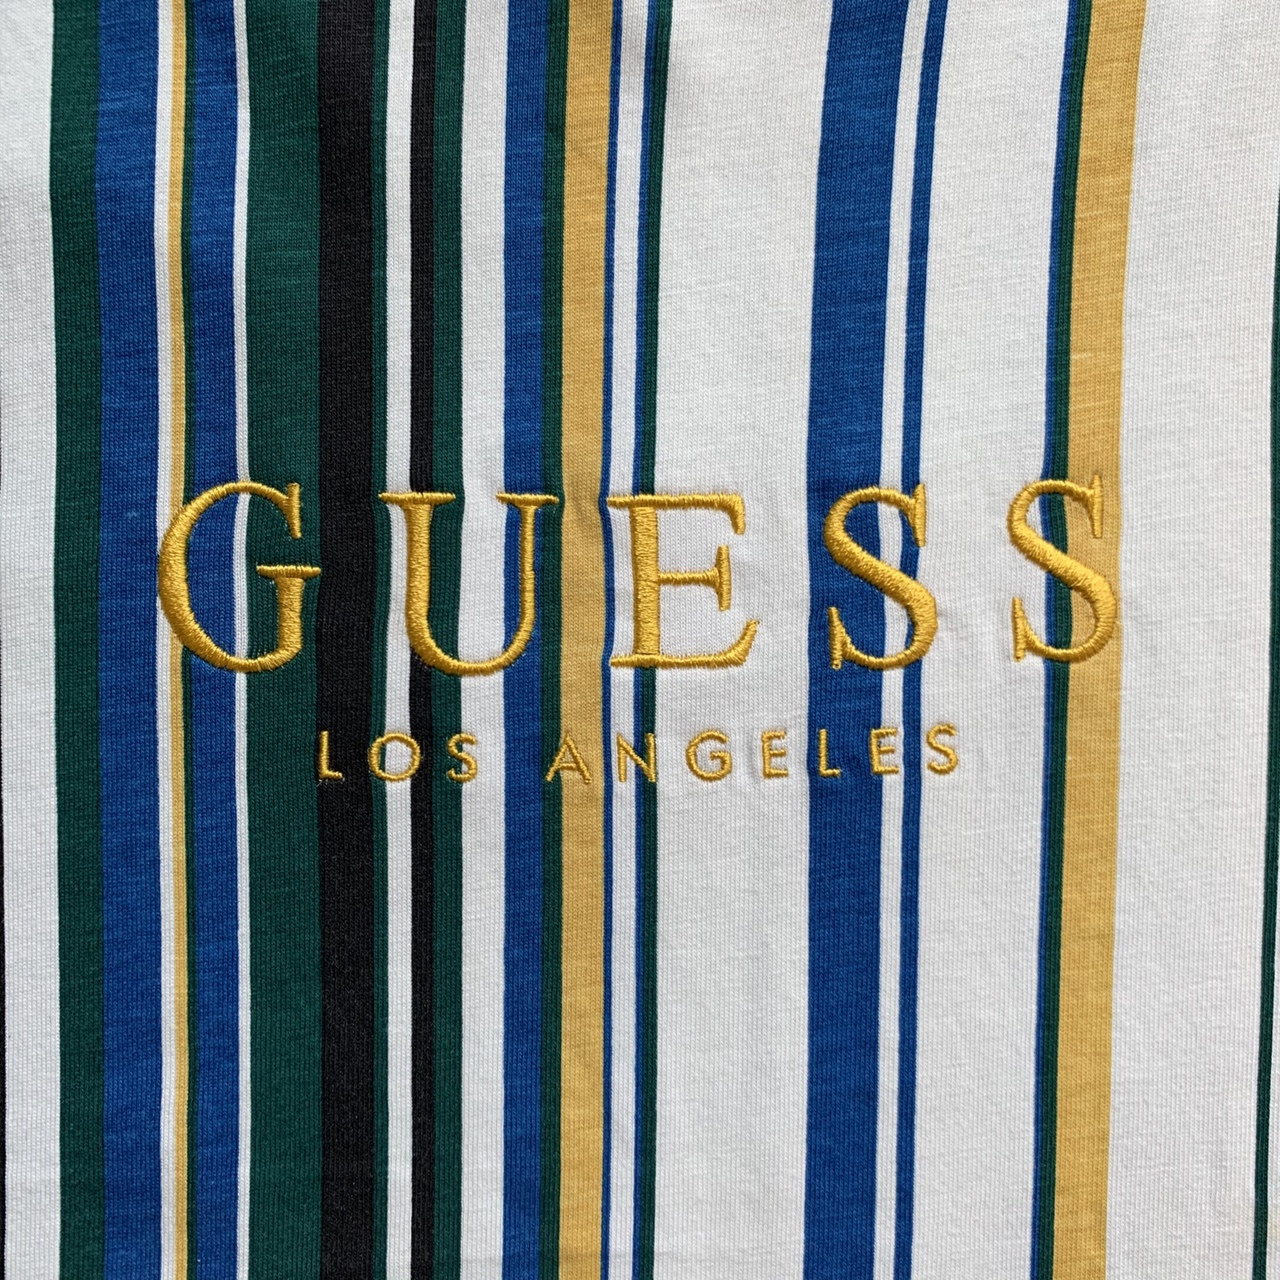 Product Image 2 - Beautiful guess striped tee #streetwear #vintage